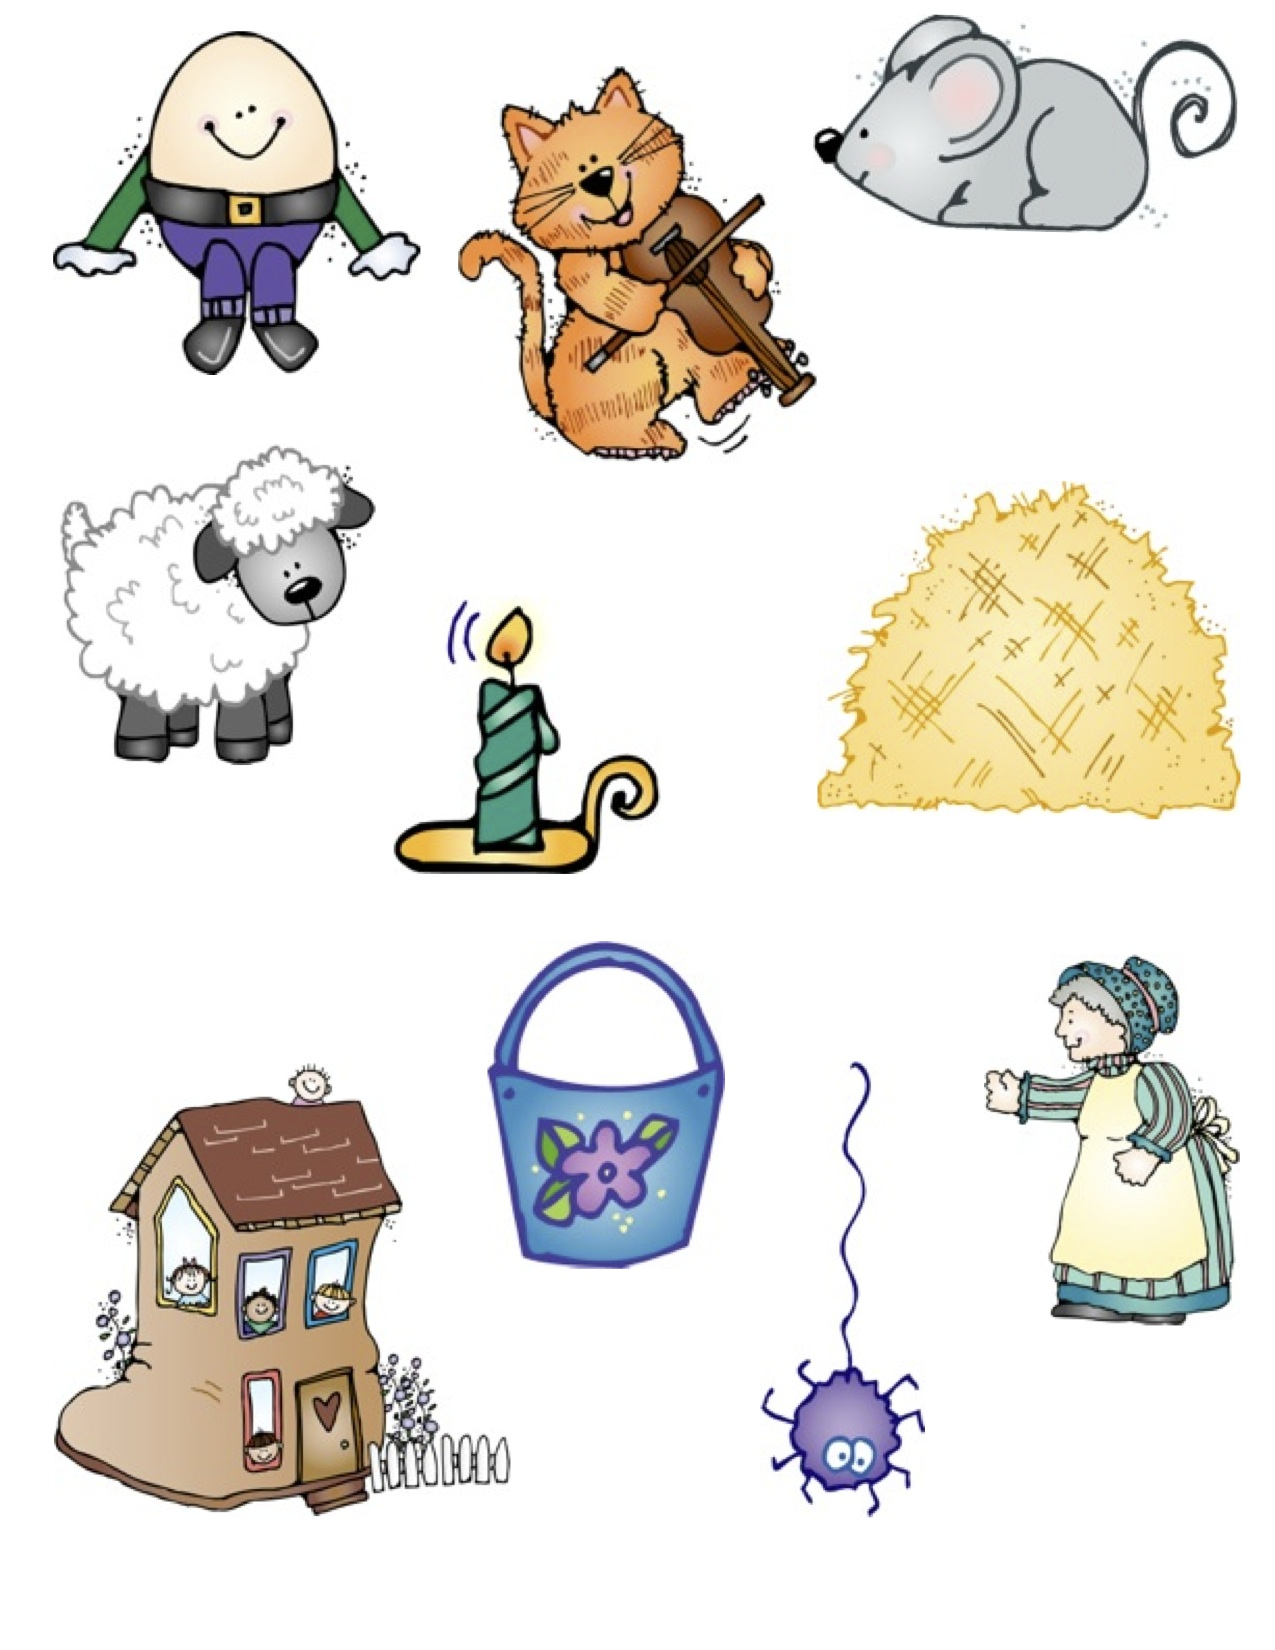 Nursery Rhymes Clip Art More fun with nursery rhymes!